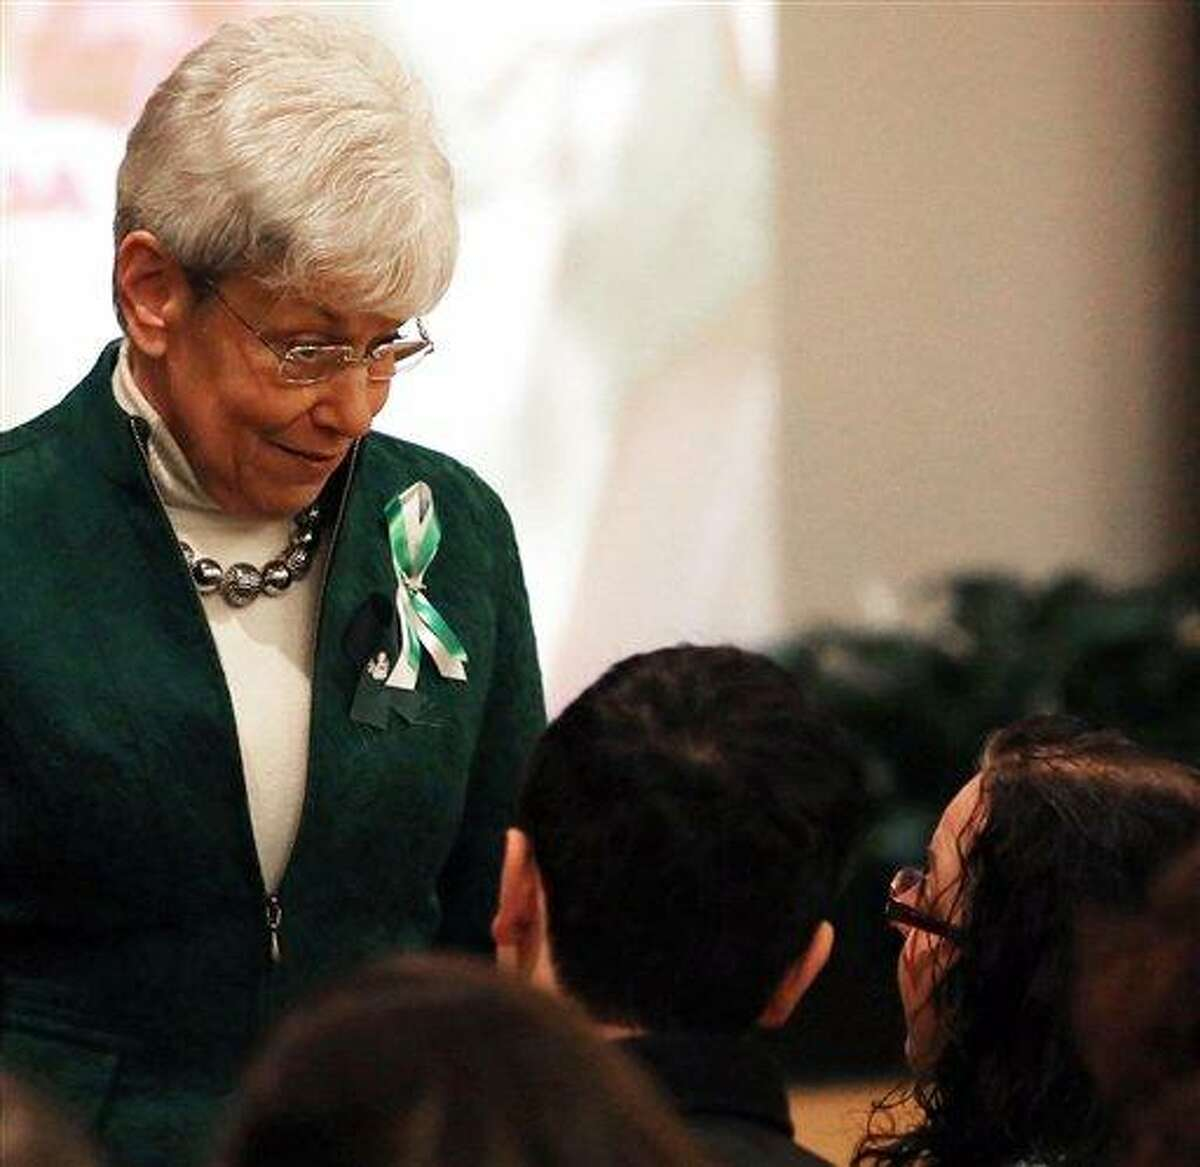 Conn. Lt. Governor Nancy Wyman speaks with Donna Soto mother of slain Sandy Hook Elementary School teacher Victoria Soto before a memorial to her daughter at Eastern Connecticut State University, Saturday March 9, 2013 in Willimantic, Conn The university gathered to remember the 2008 graduate who sacrificed her life to save her students during the December 14, 2012 school shooting where twenty children and six adults were slain by Adam Lanza. Soto was remembered by friends, university staff and family as a dedicated student and a caring individual. (AP Photo/Journal Inquirer, Jared Ramsdell)